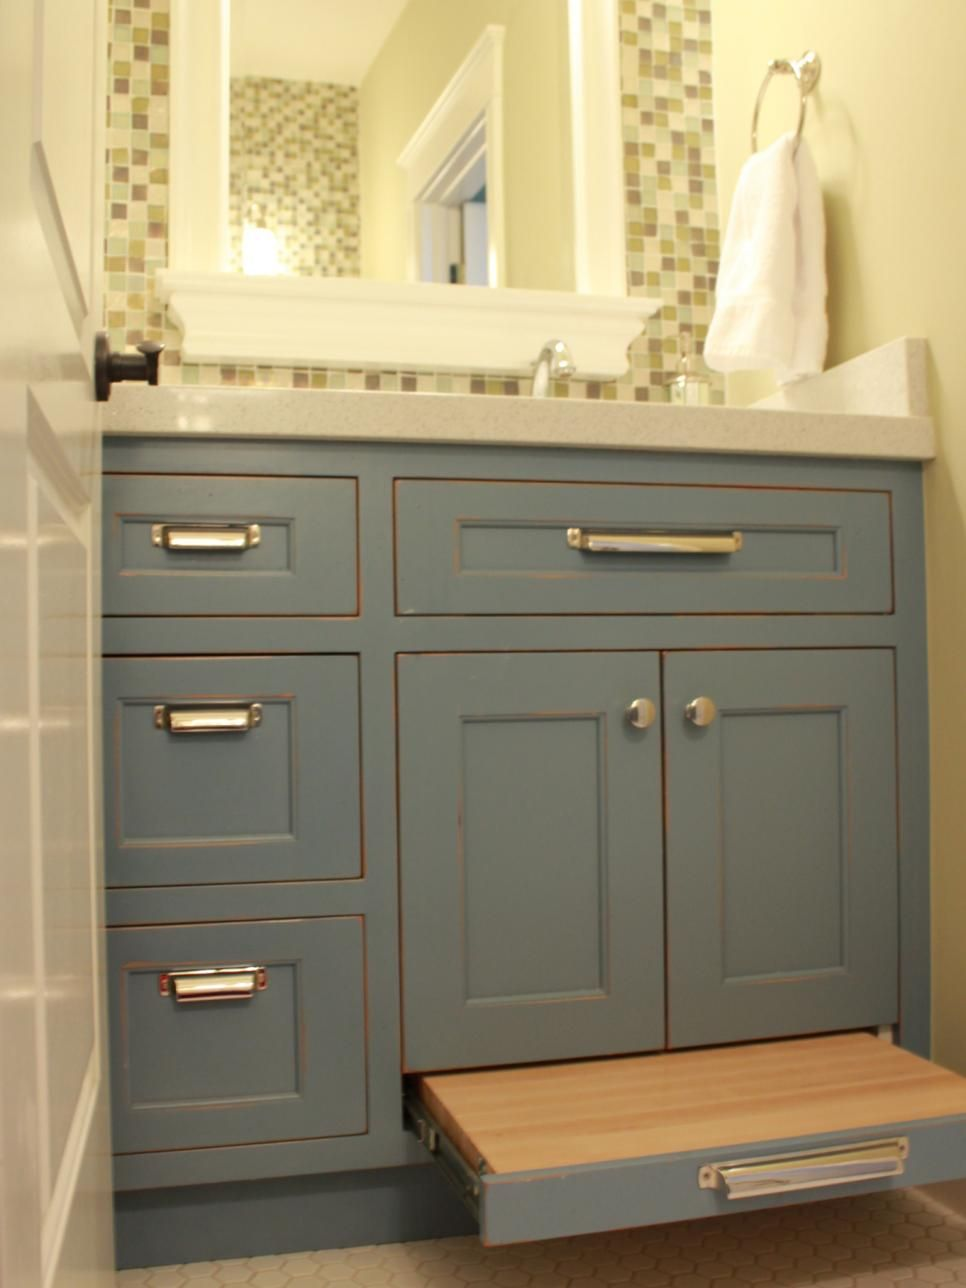 Get the most out of your bathroom vanity with these clever storage ideas